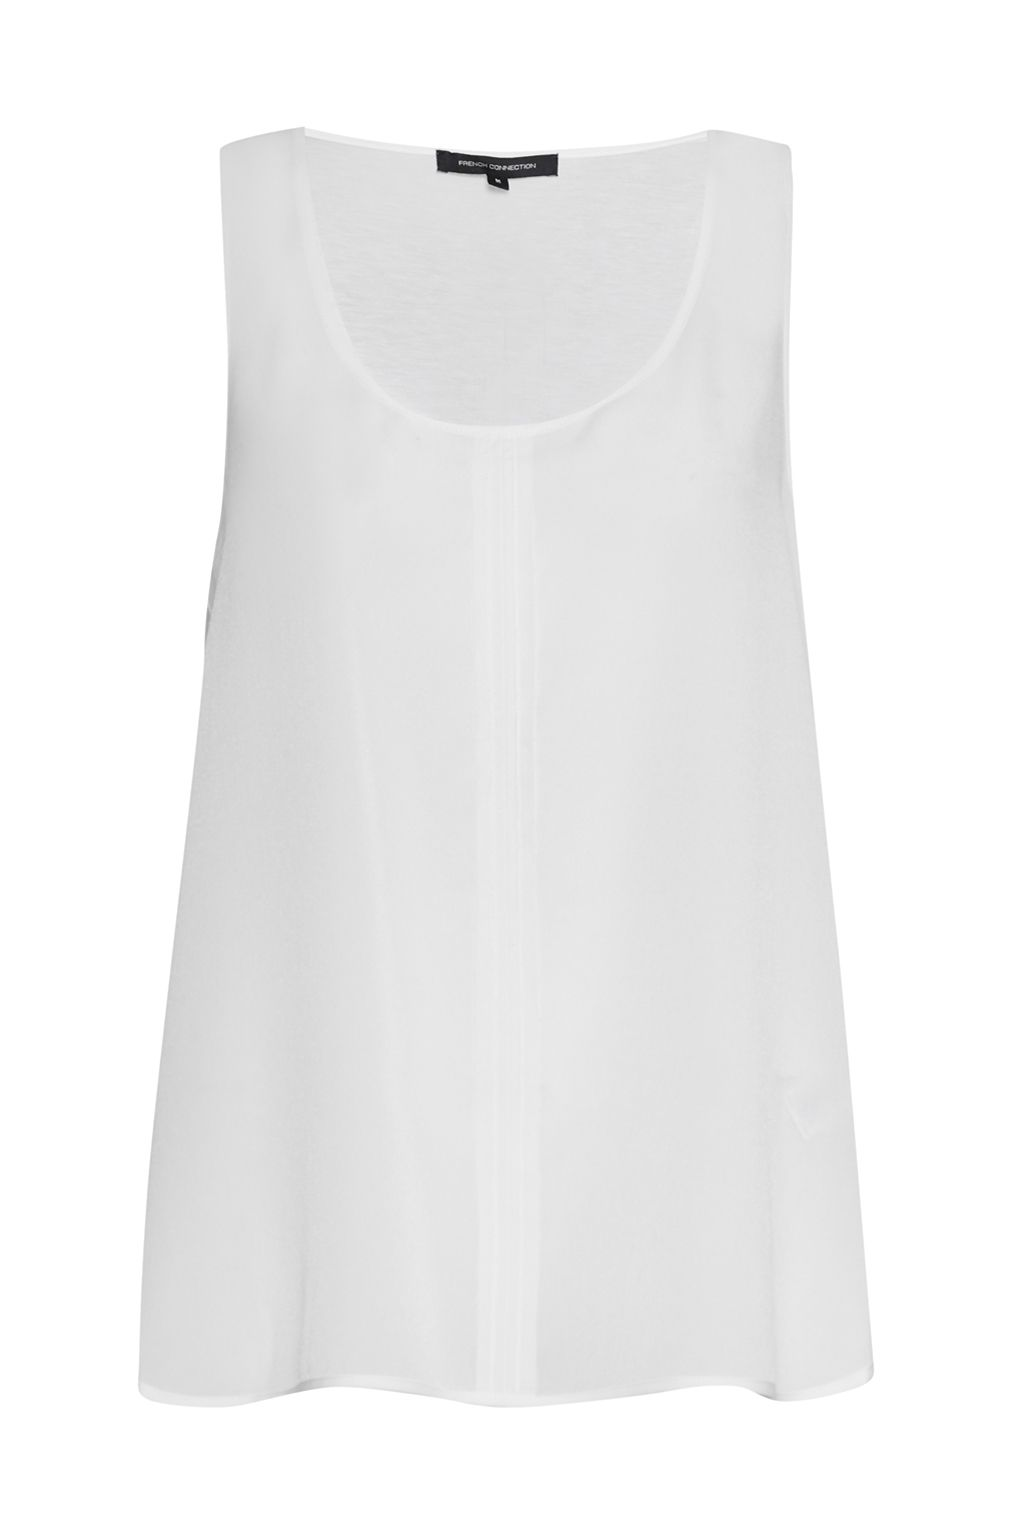 French Connection Clee Crepe Light Vest Top, White